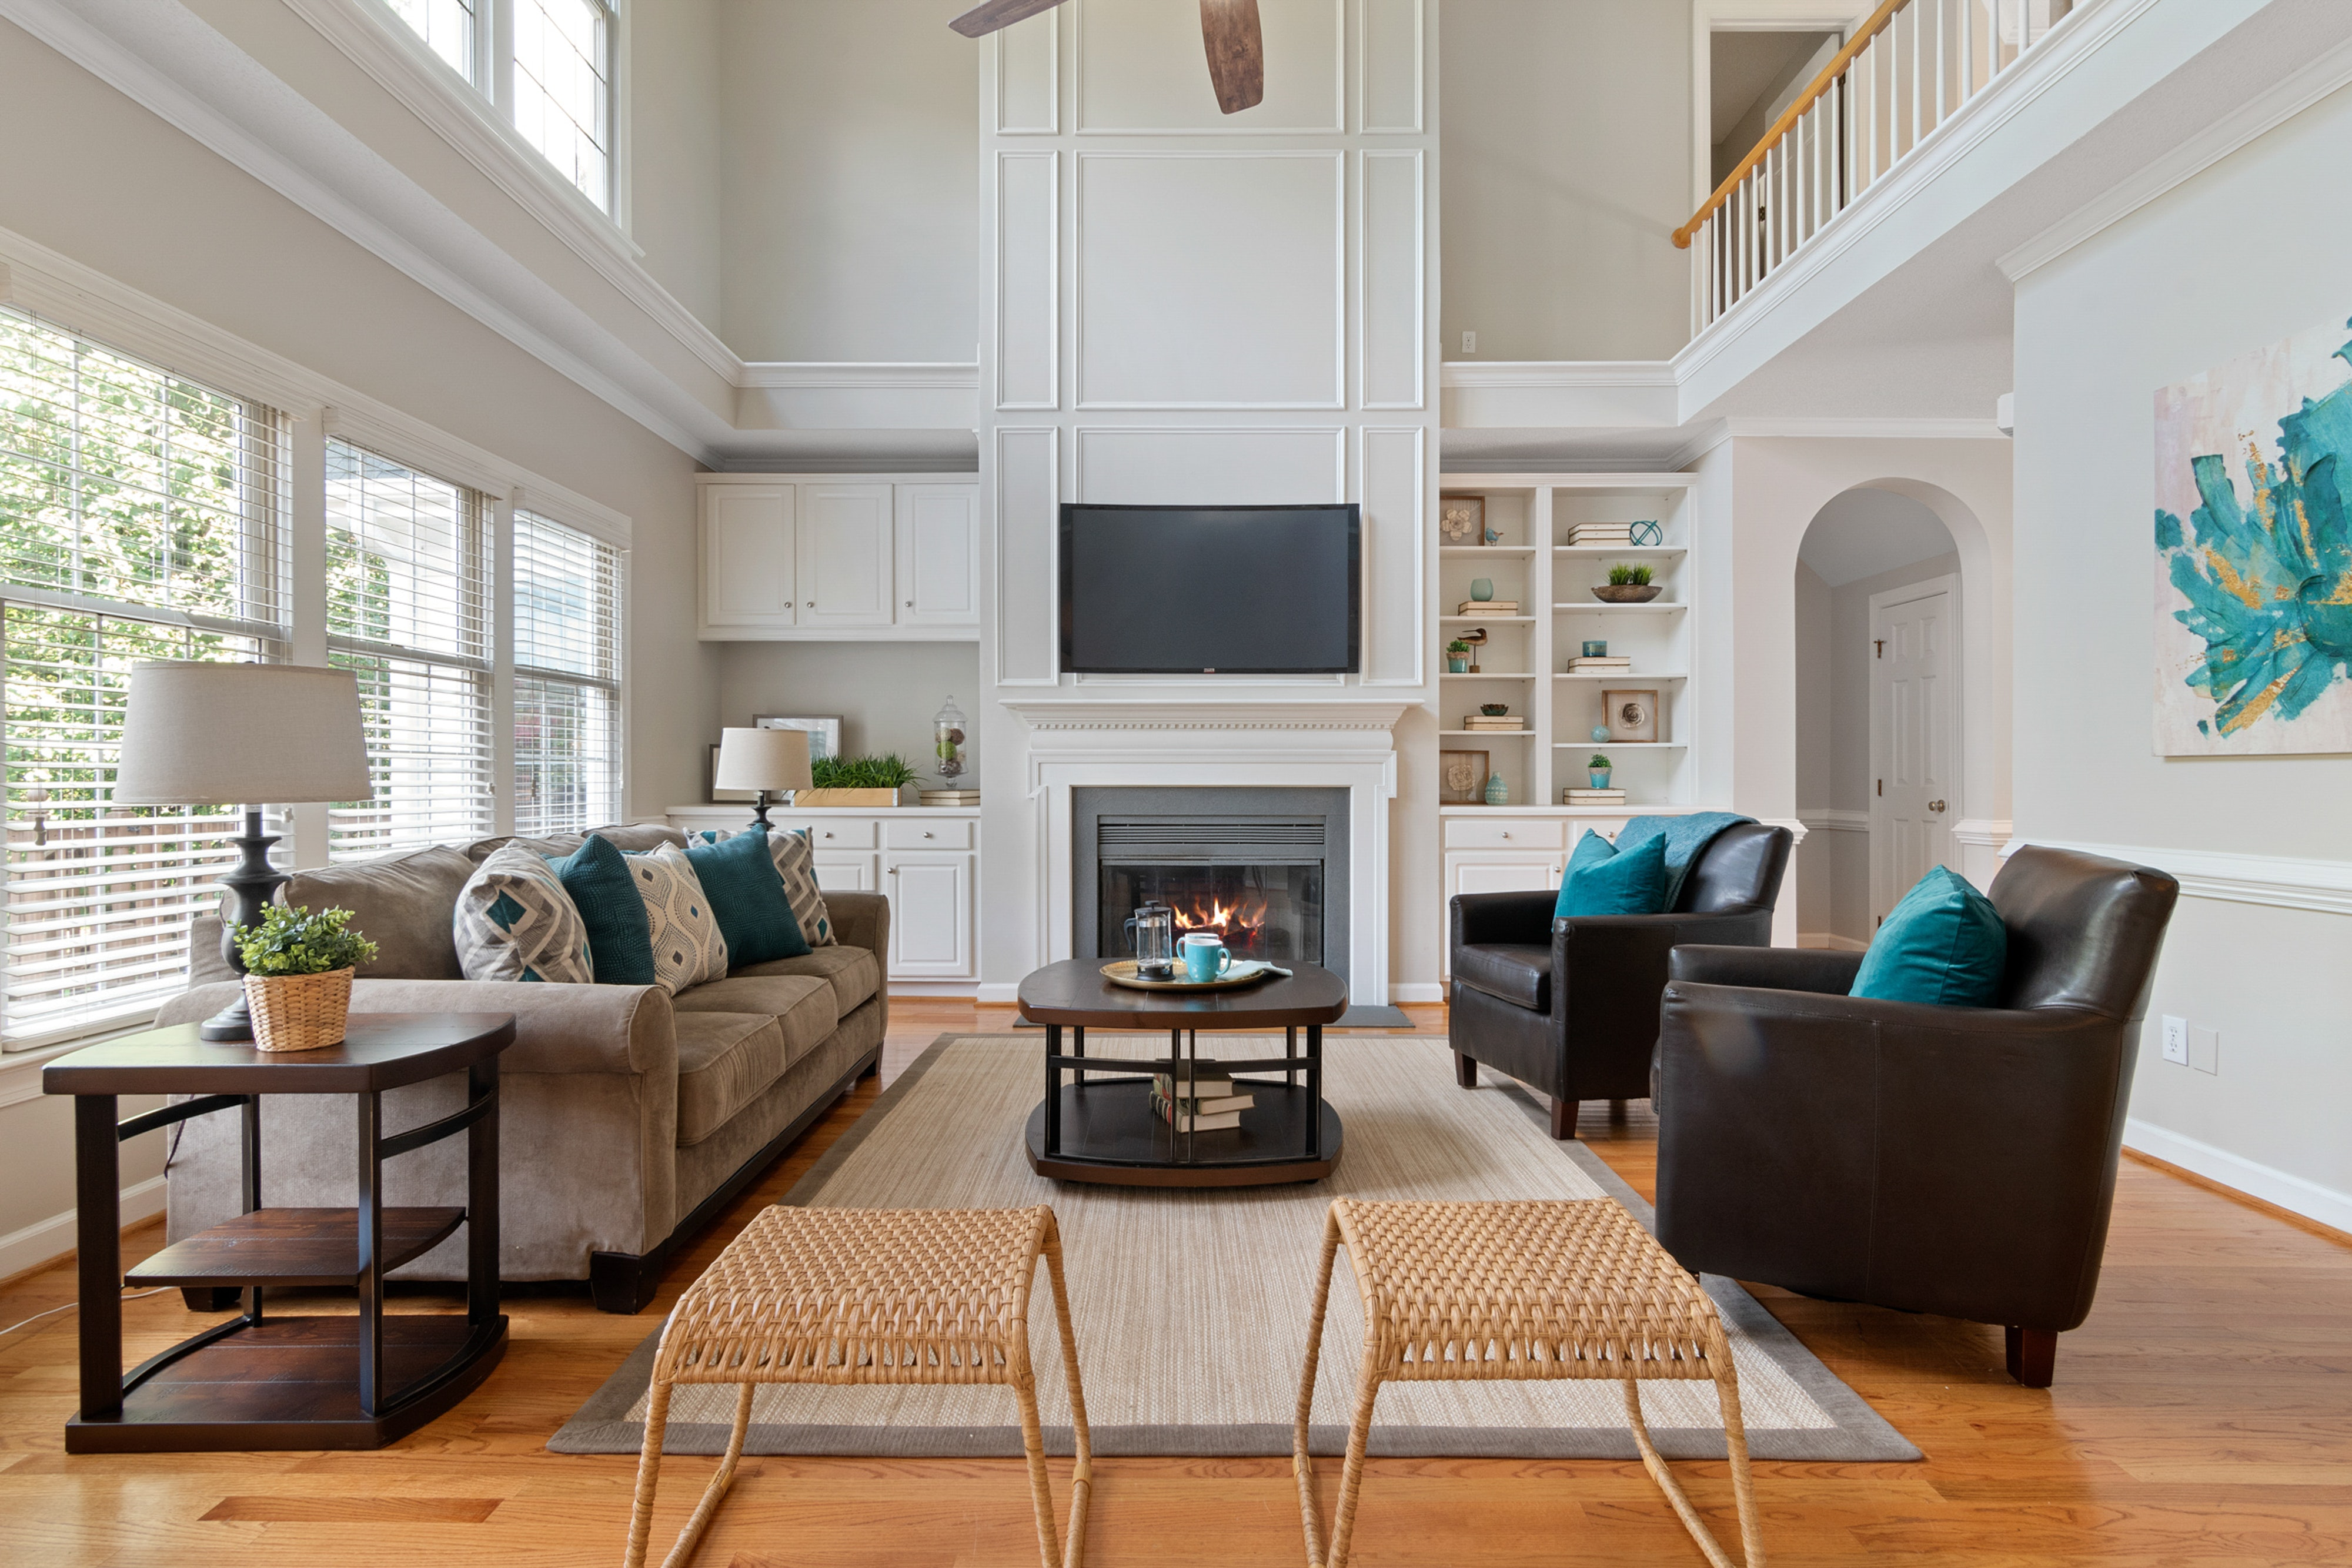 The Top 3 Things to Look for When Walking Through a Home for the First Time